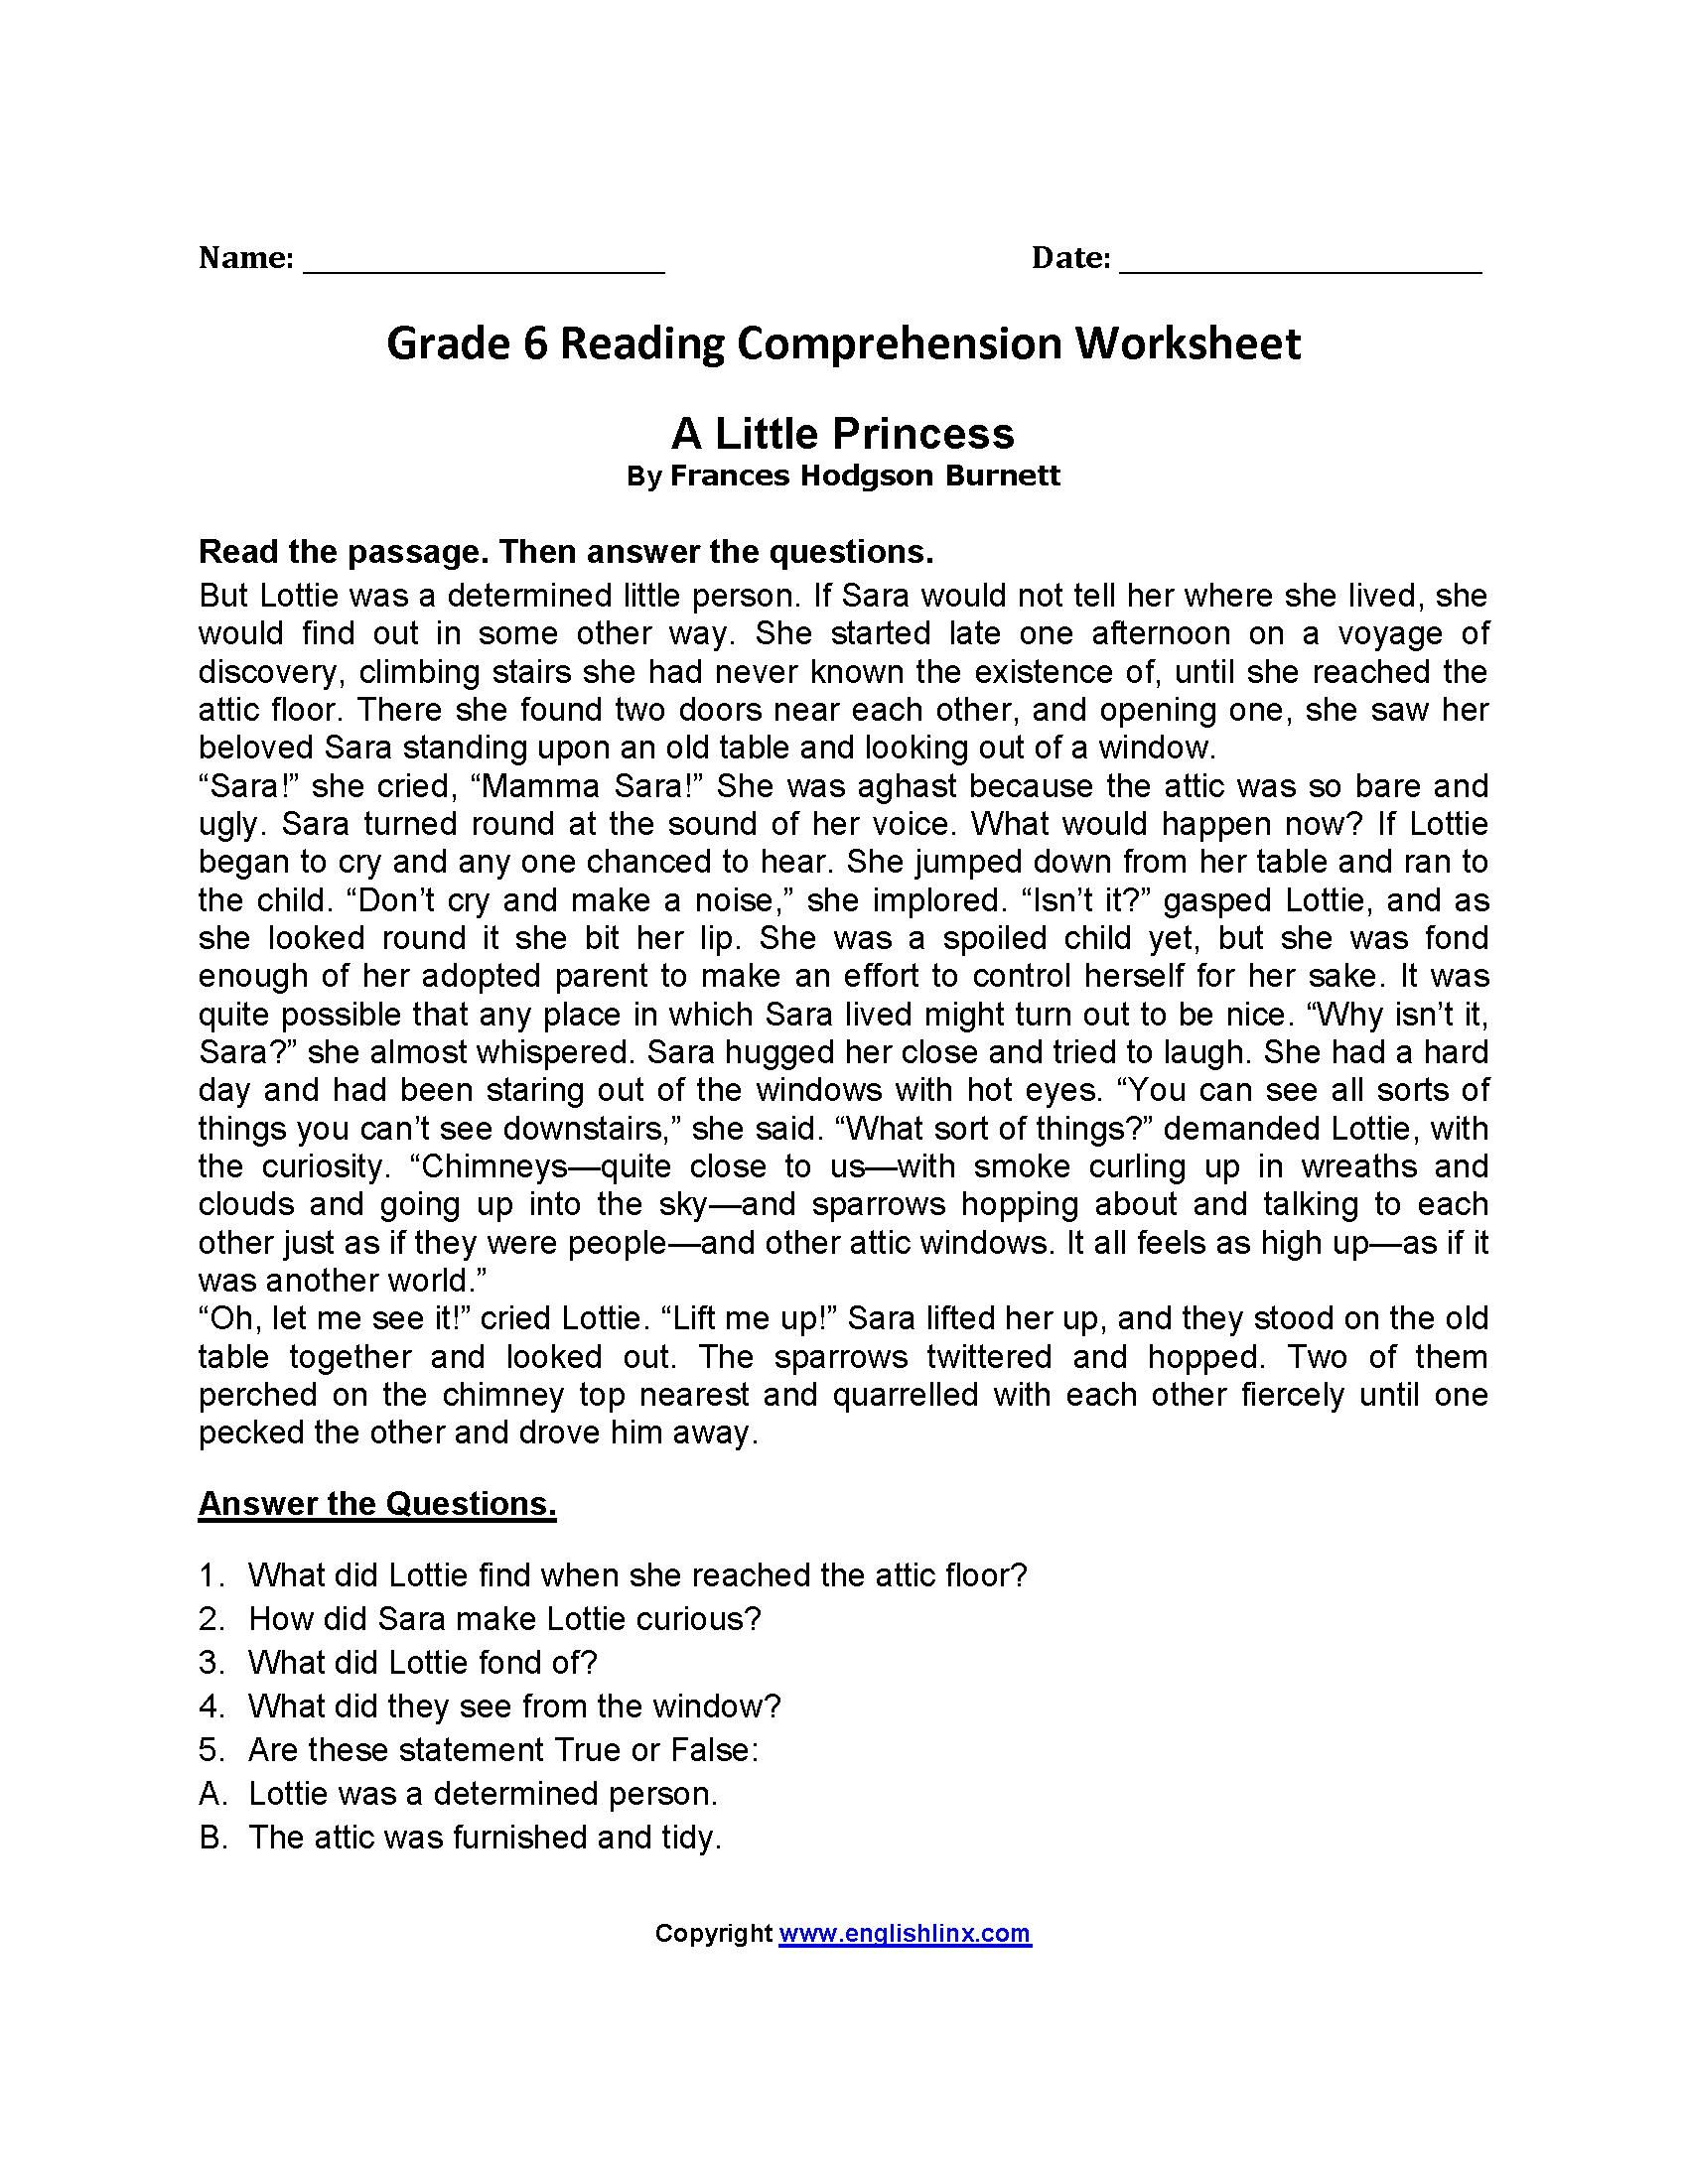 Free Printable Reading Worksheets For Grade 6 2 In